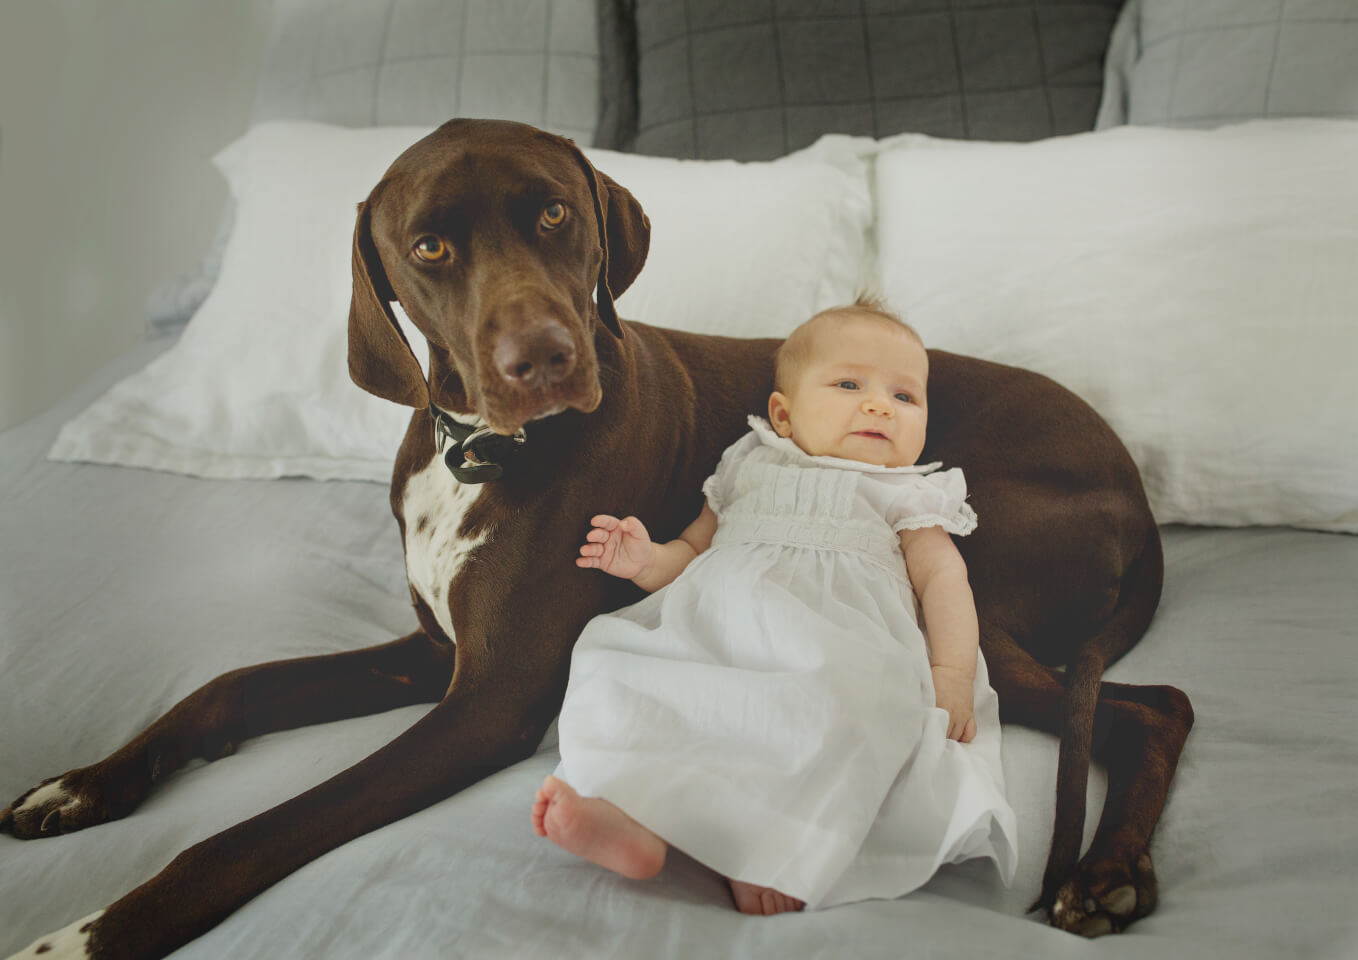 Baby girl and family dog